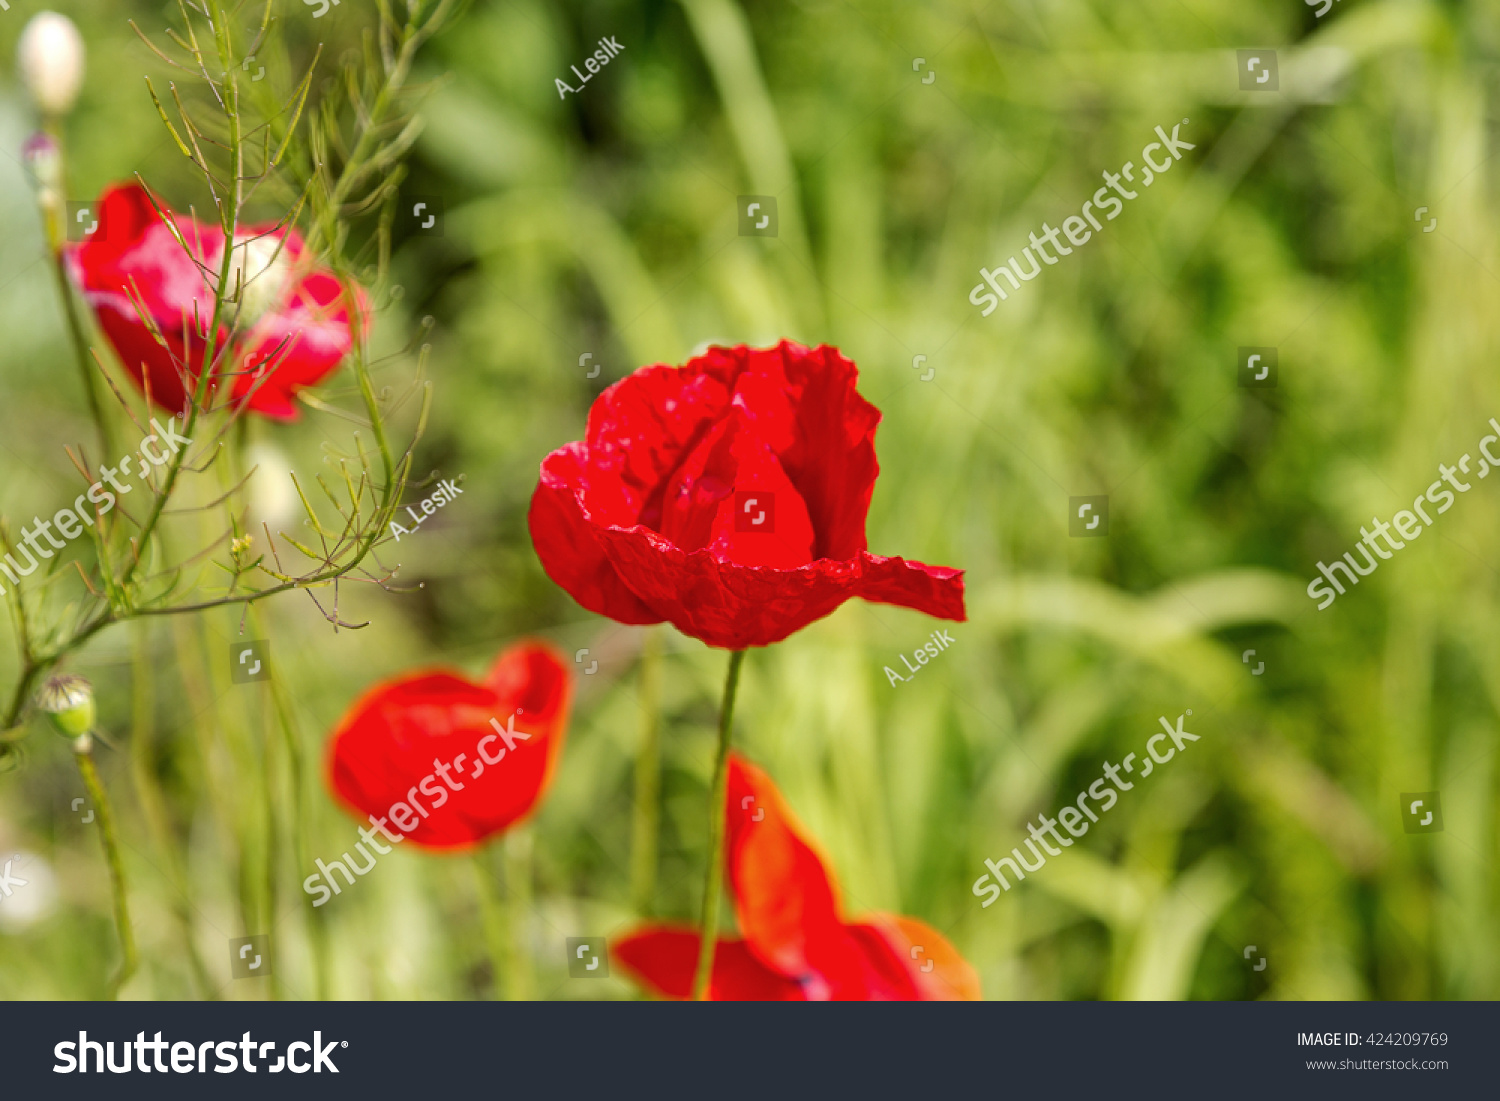 Poppy Wild Red Poppies Flowers Medicinal Stock Photo Edit Now